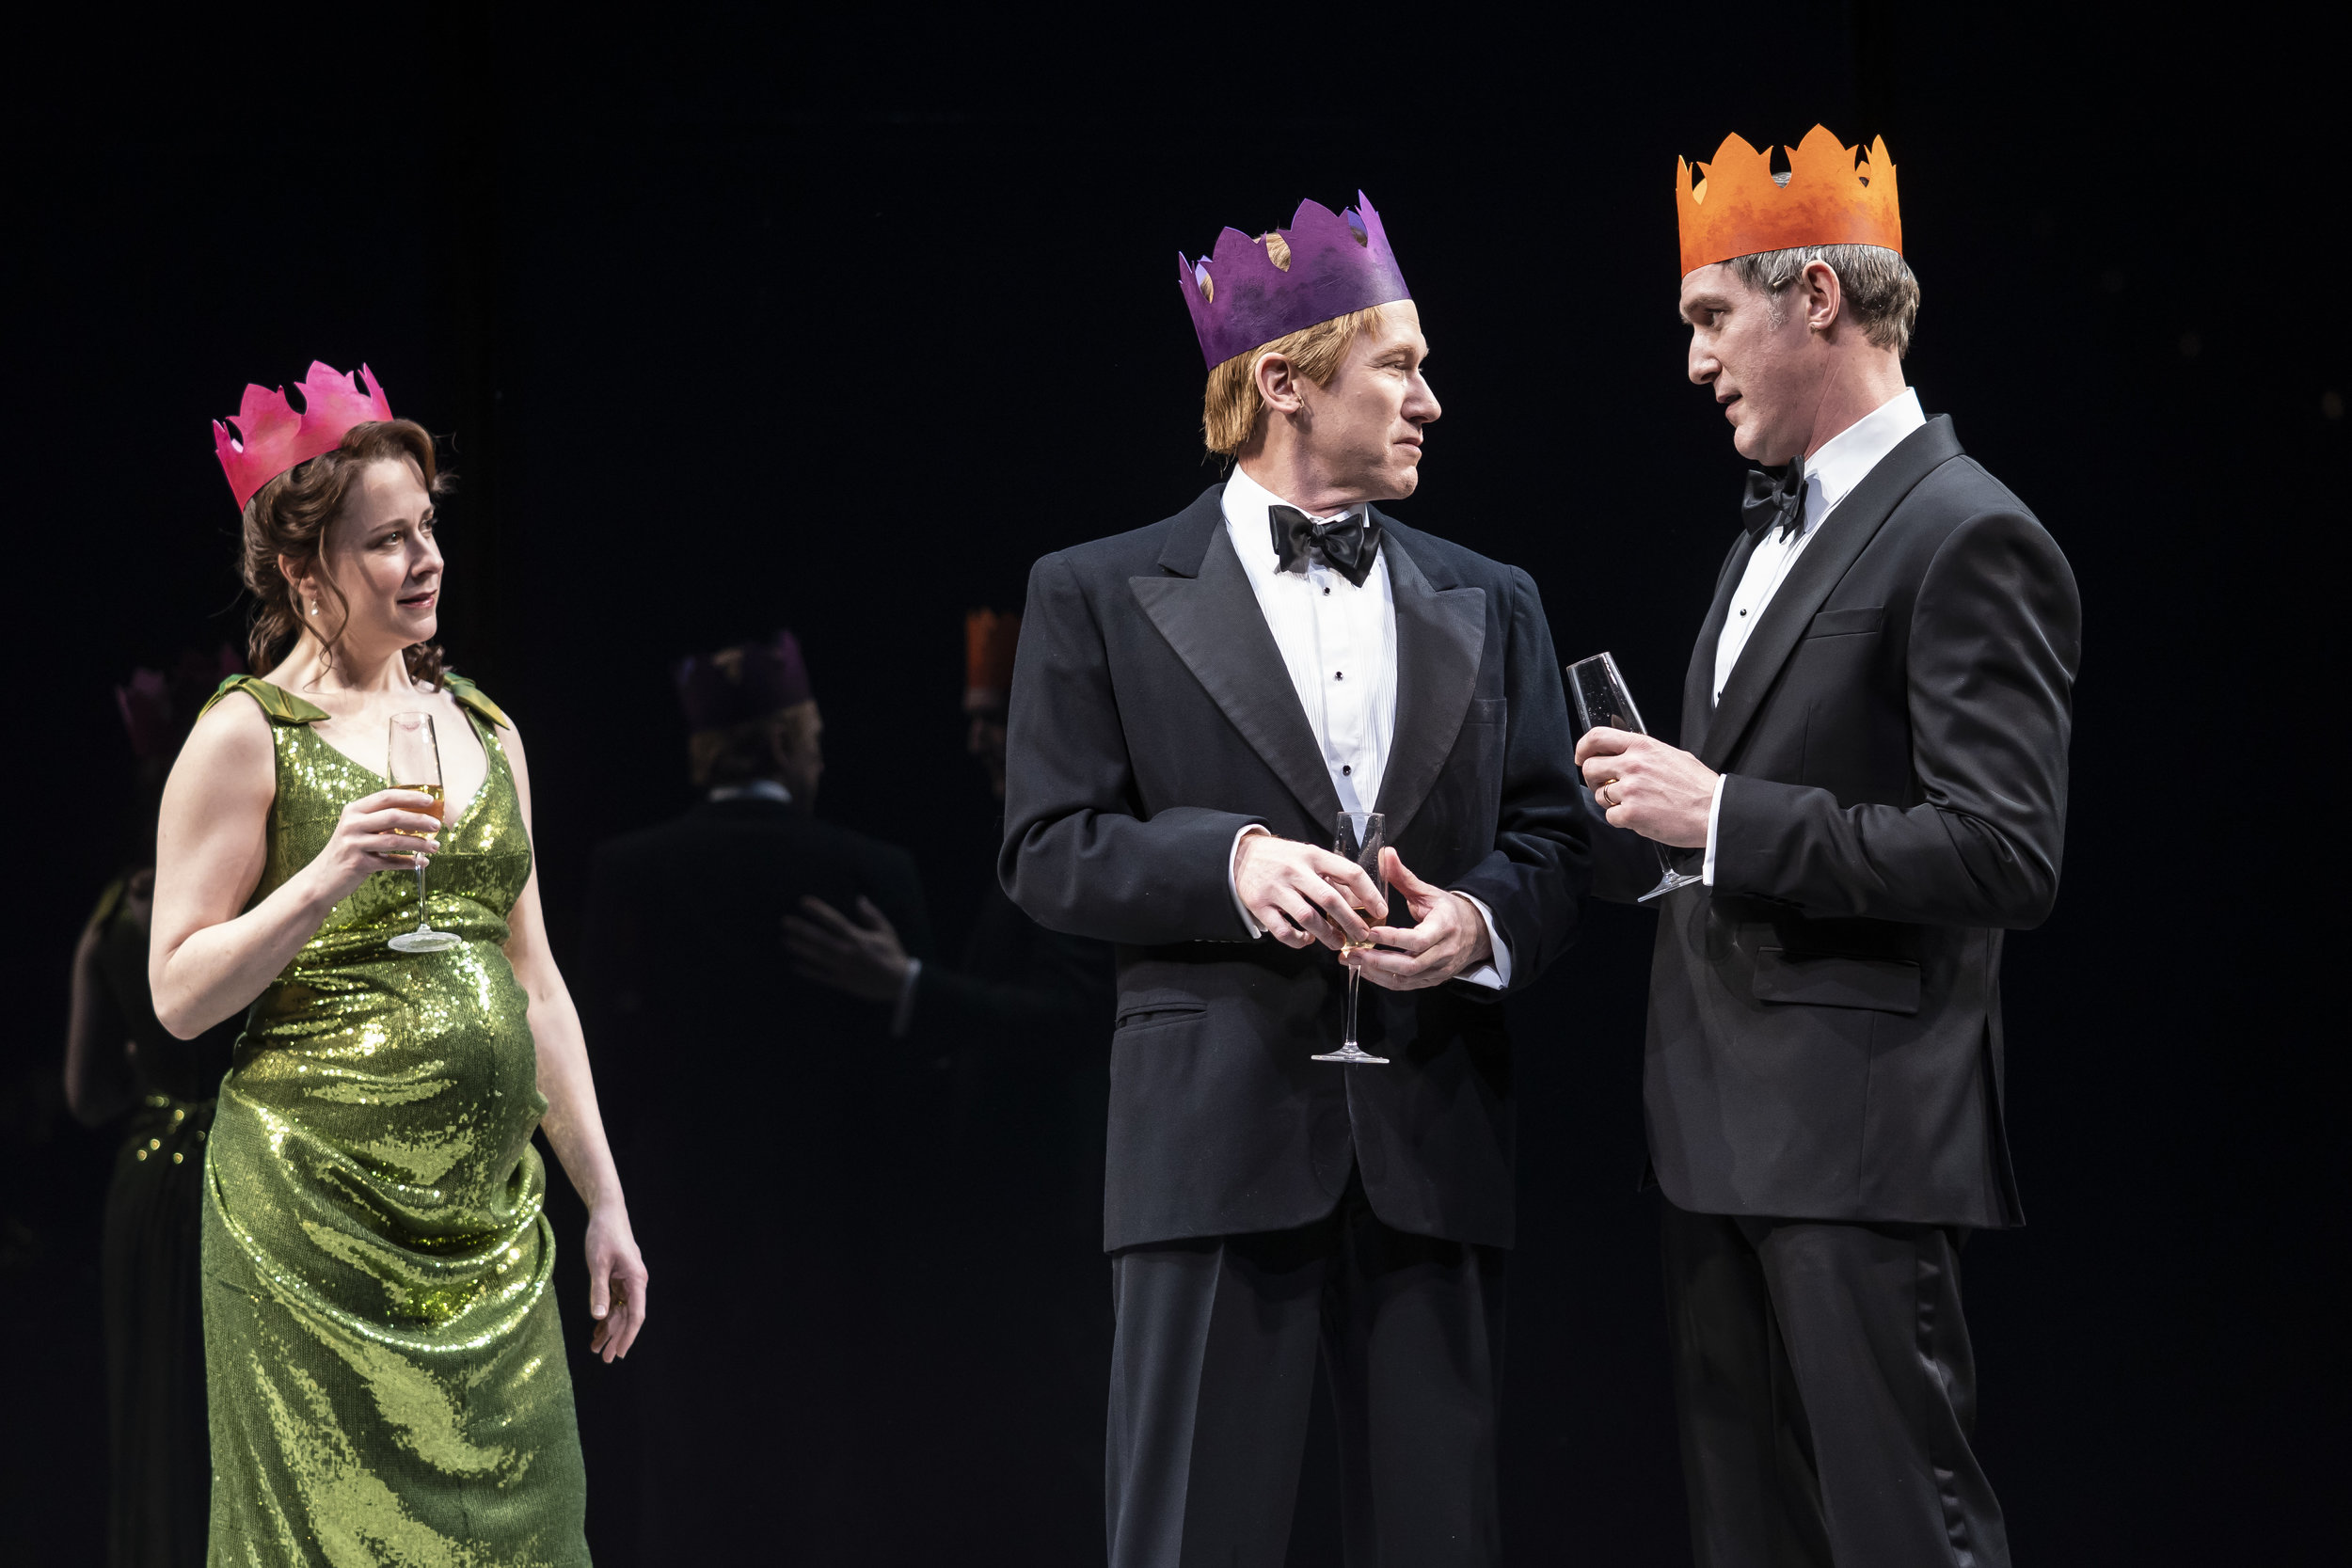 Kate Fry  (Hermione),  Dan Donohue  (Leontes) and  Nathan Hosner  (Polixenes) in  The Winter's Tale  by William Shakespeare, directed by Robert Falls (May 4 – June 9, 2019).